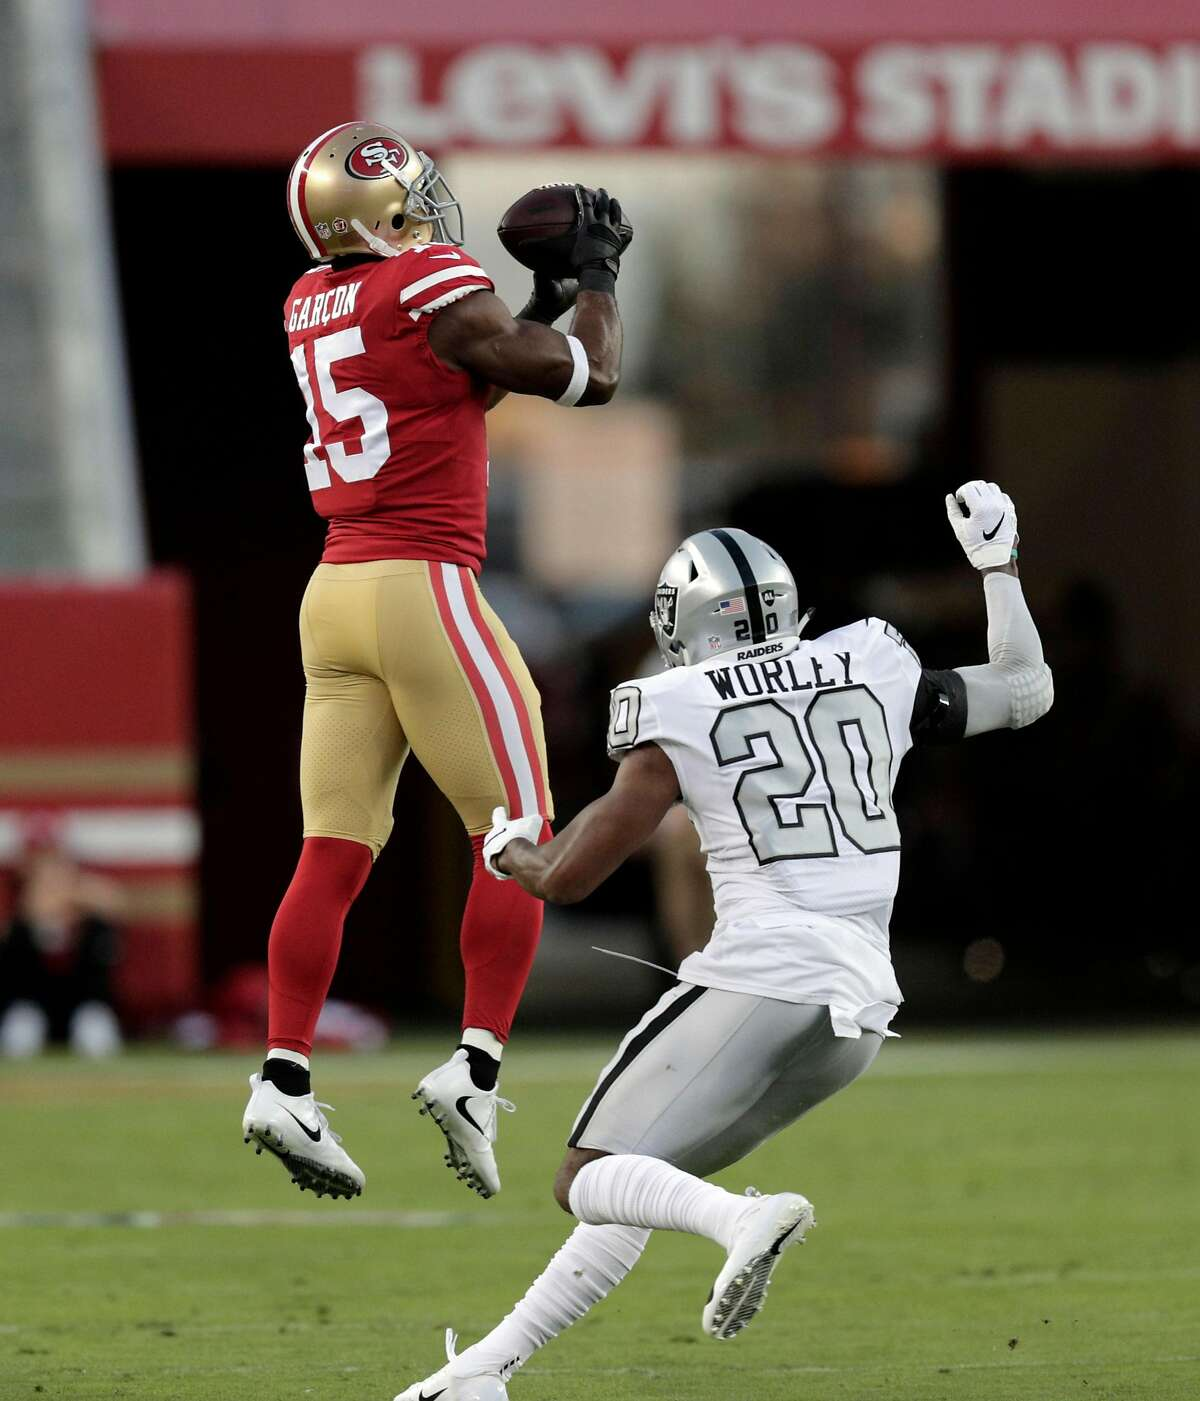 Pierre Garcon (15) leaps for a catch from Nick Mullens (4) in the first quarter as the San Francisco 49ers played the Oakland Raiders at Levi's Stadium in Santa Clara, Calif., on Thursday, November 1, 2018.